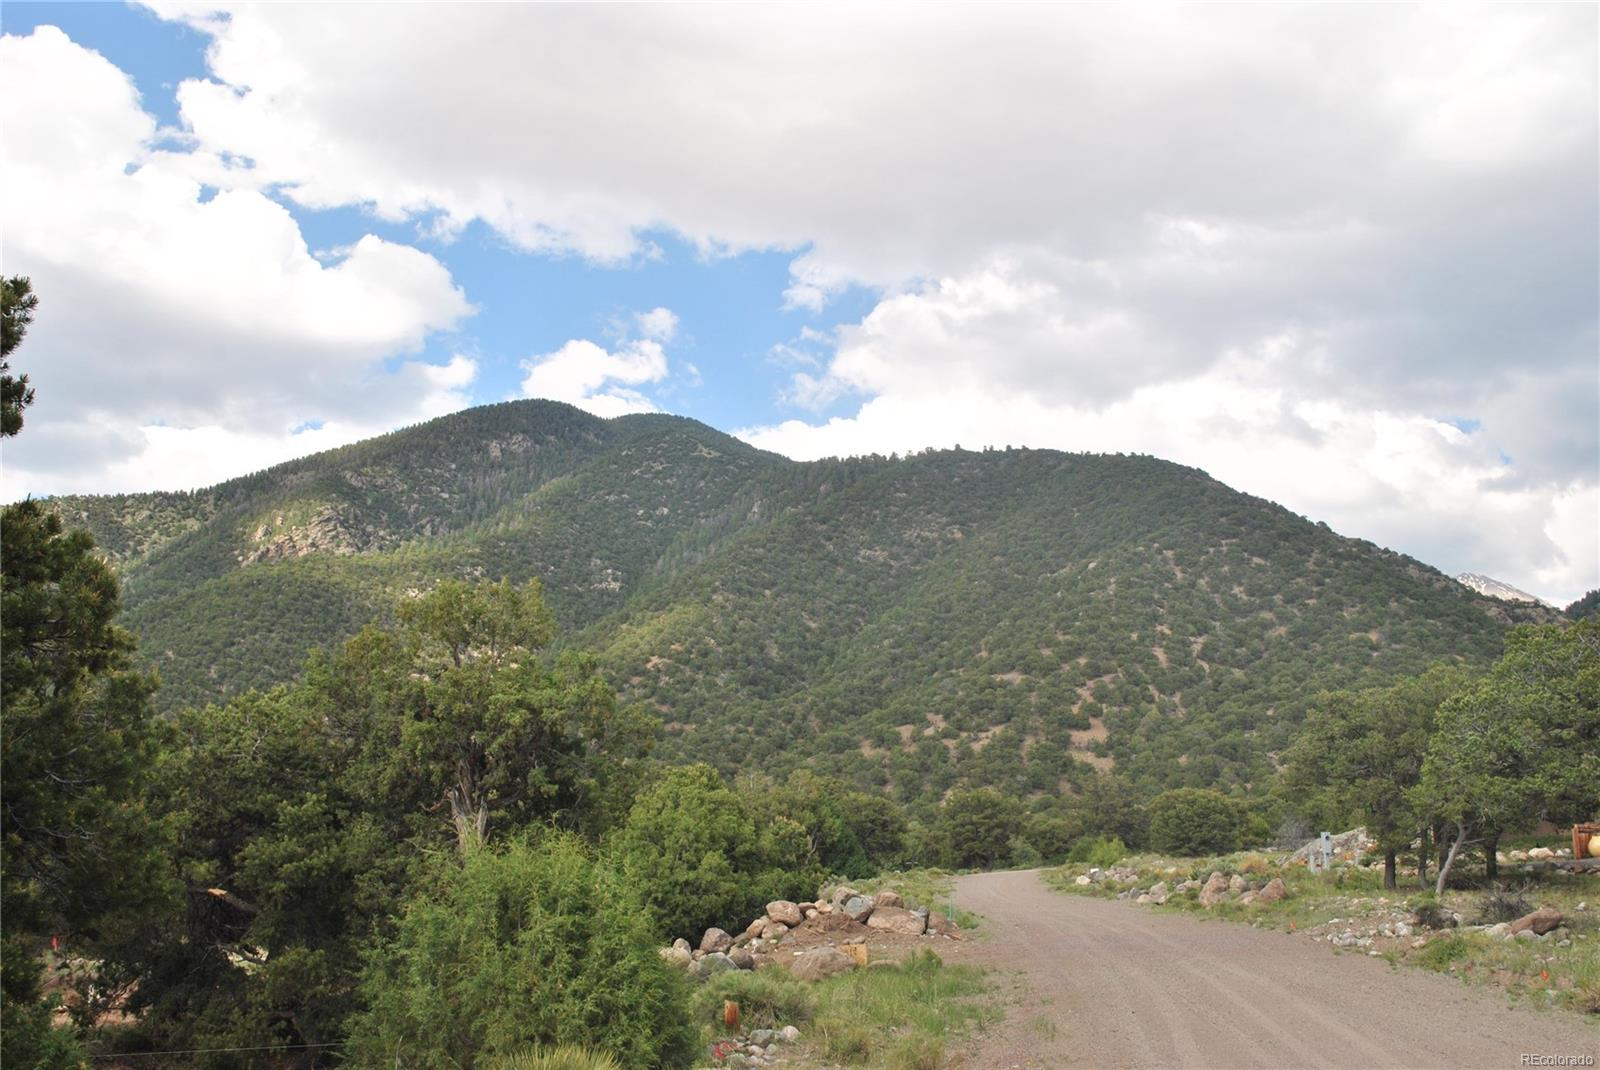 823 & 824 Meadowbrook Trail, Crestone, CO 81131 - Crestone, CO real estate listing